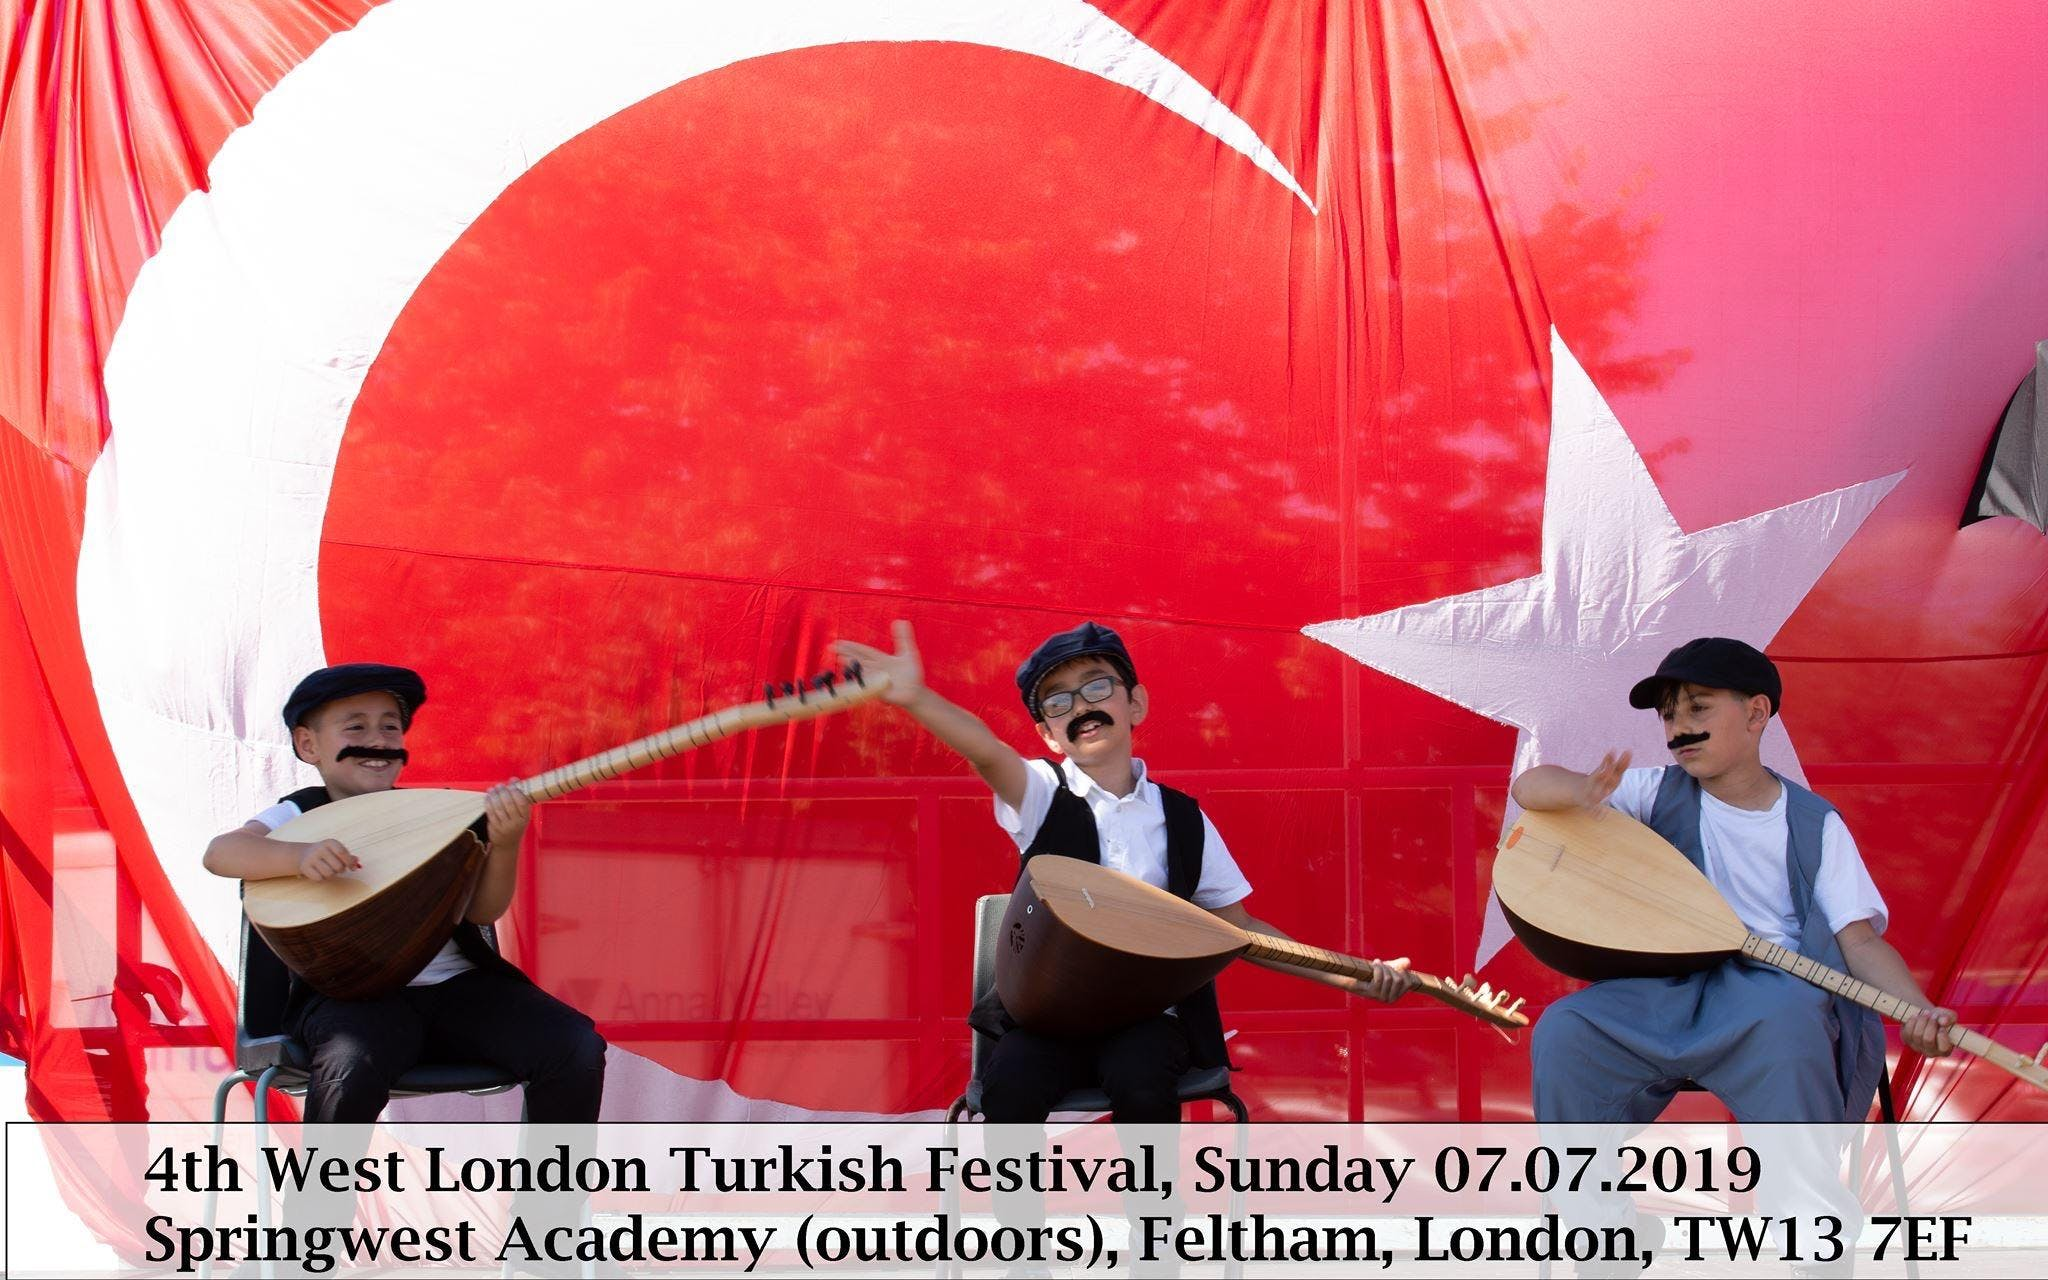 West London Turkish Festival 2019 (a Charity event) - Festival Guide